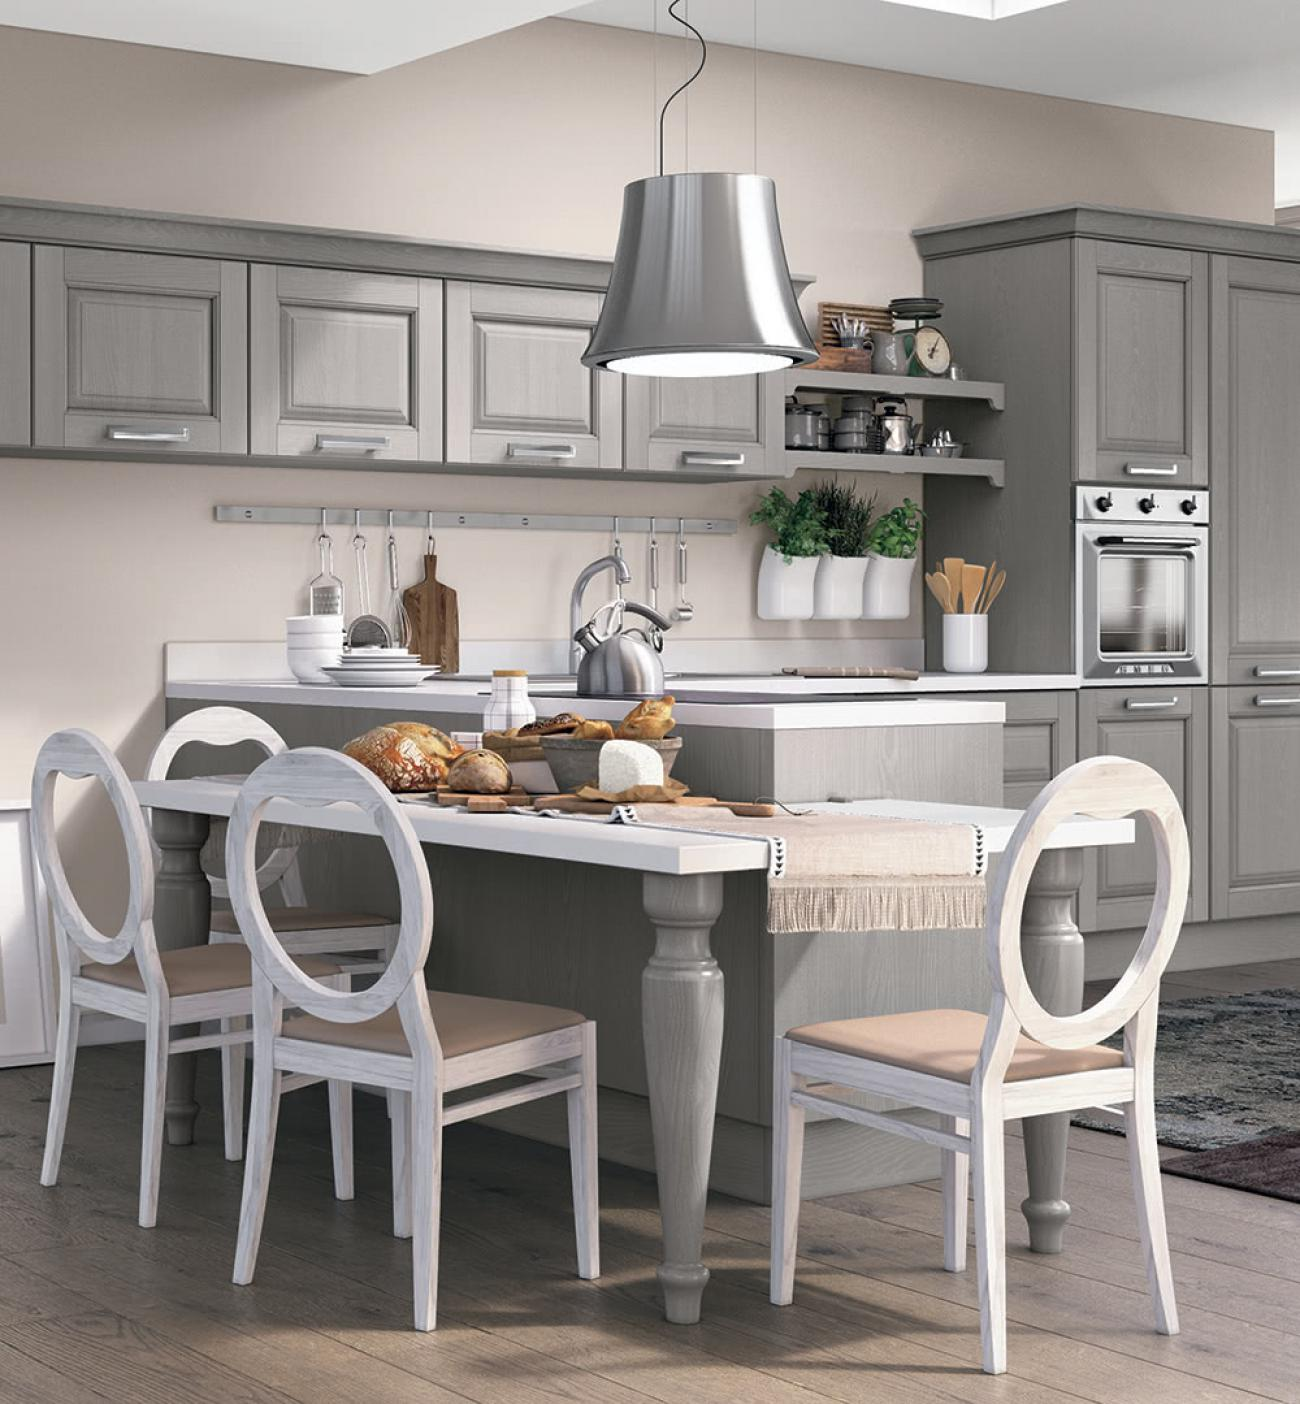 Classic Kitchens - Laura - 01